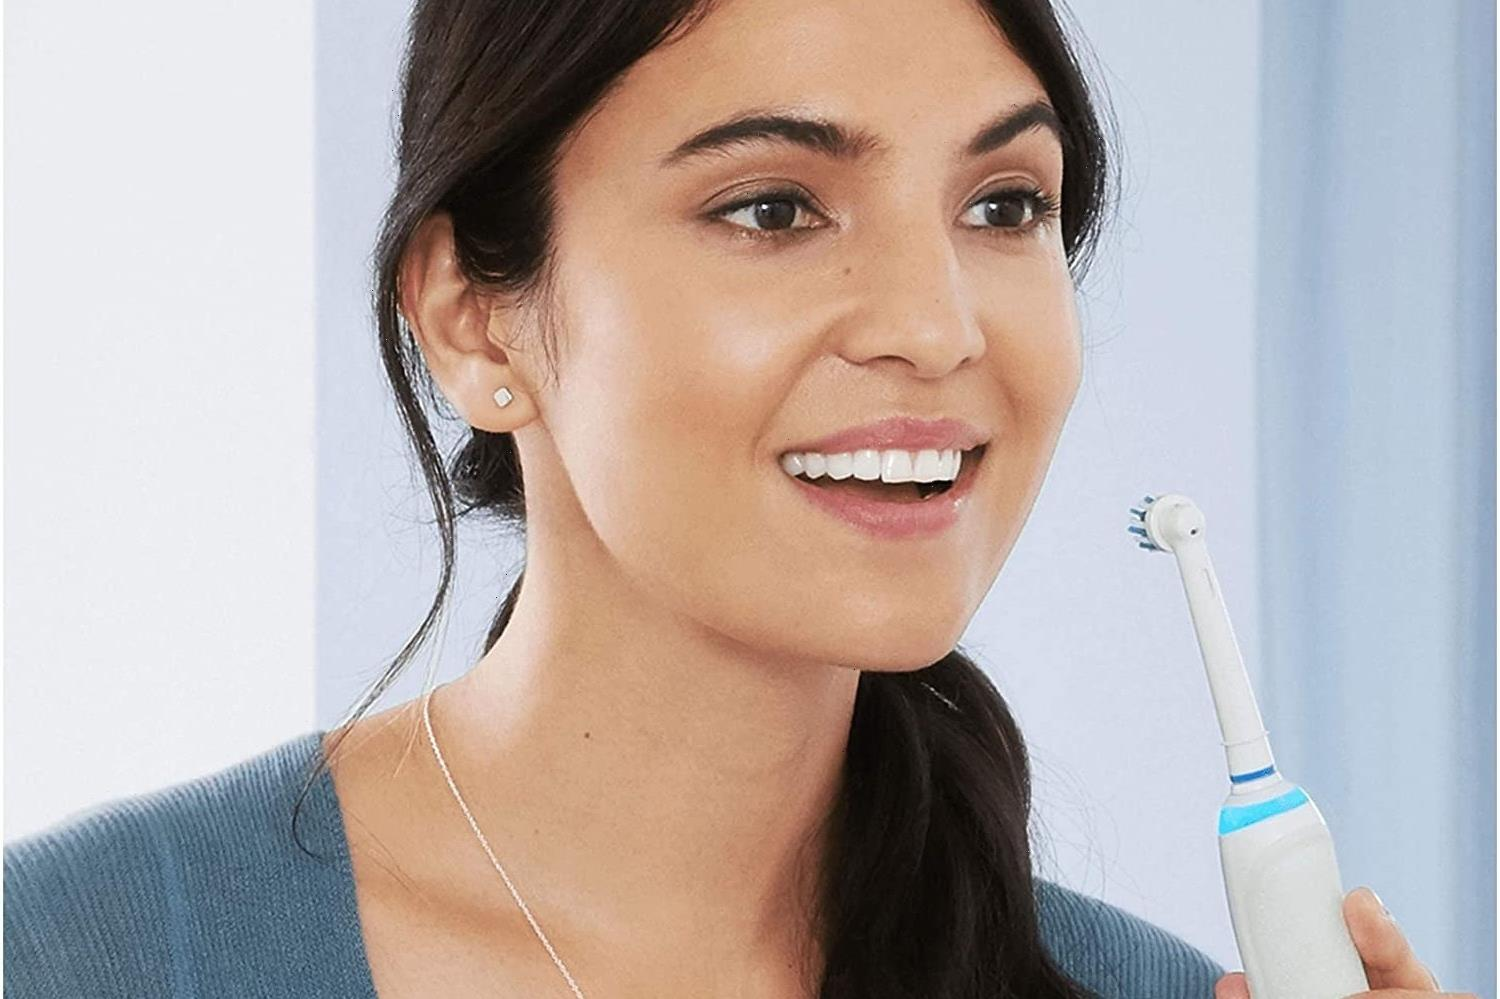 Oral-B Smart Electric Toothbrush reduced by £165 in HUGE Amazon Prime Day Deal